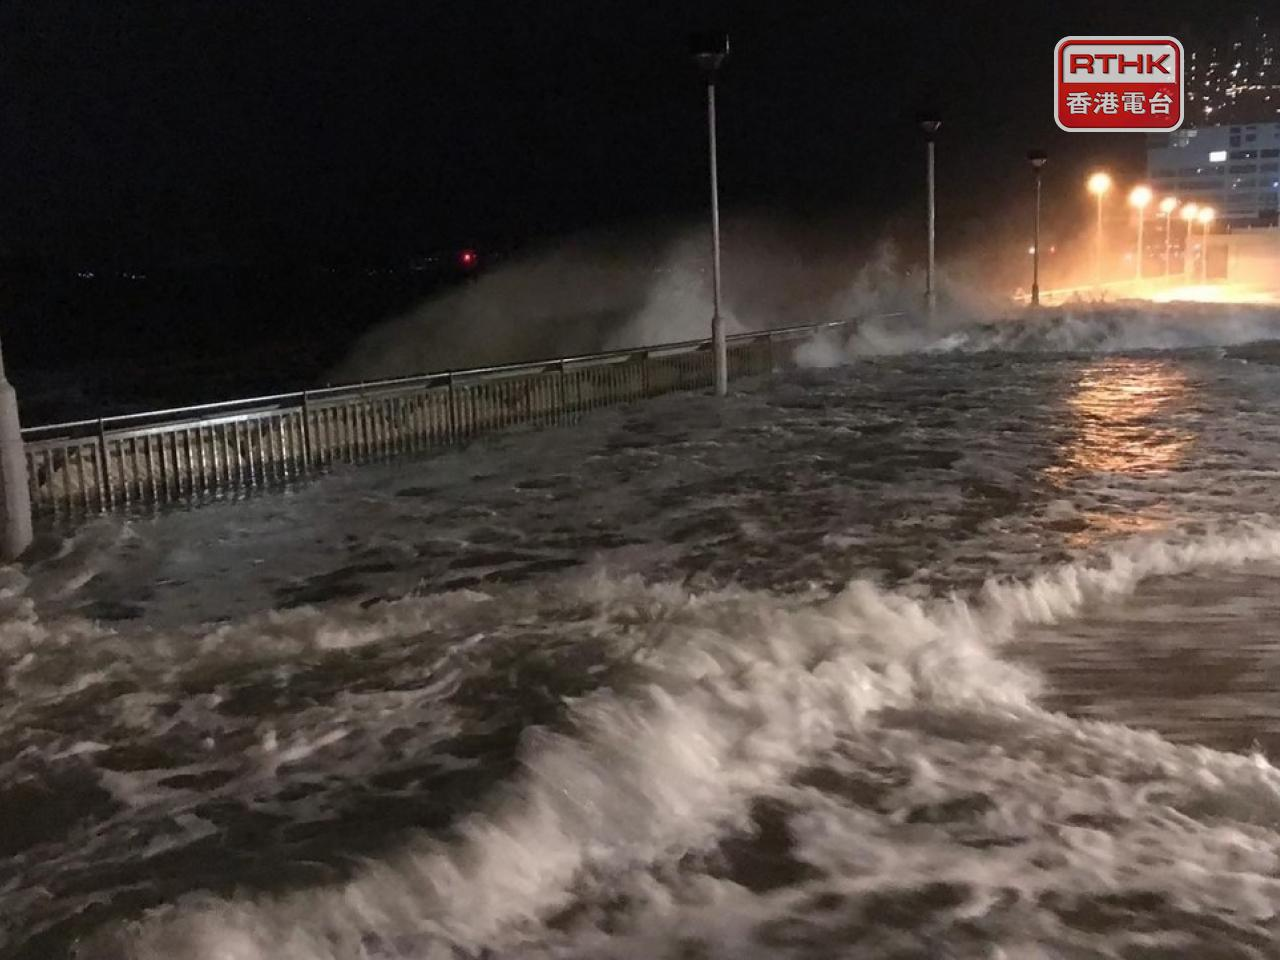 Gales and floods batter HK as Kompasu nears the city